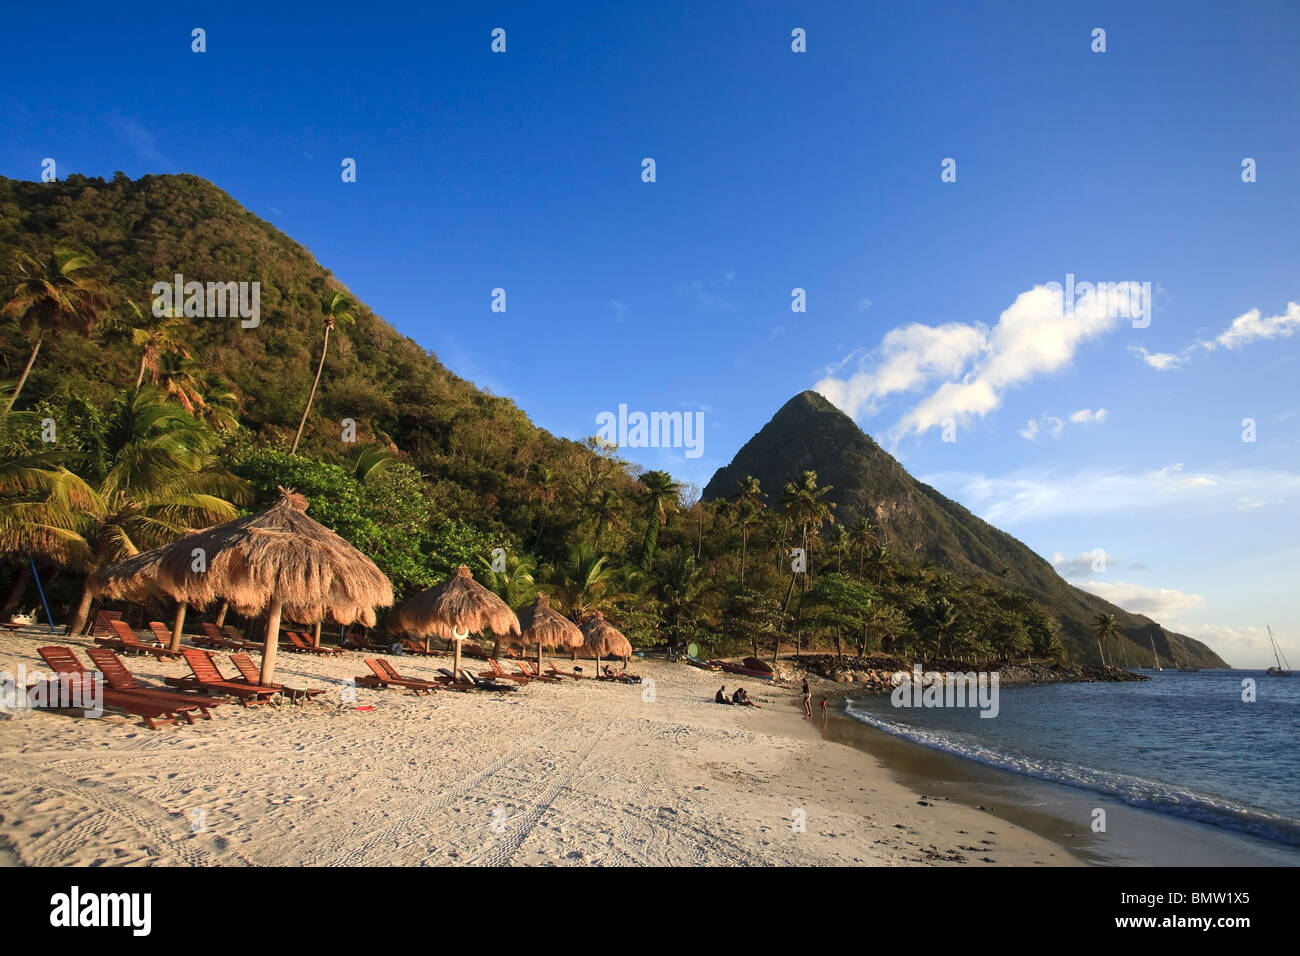 Caribbean, St Lucia, Gros Piton, (UNESCO World Heritage Site) and Anse des Pitons Beach (Anse Jalousie) - Stock Image